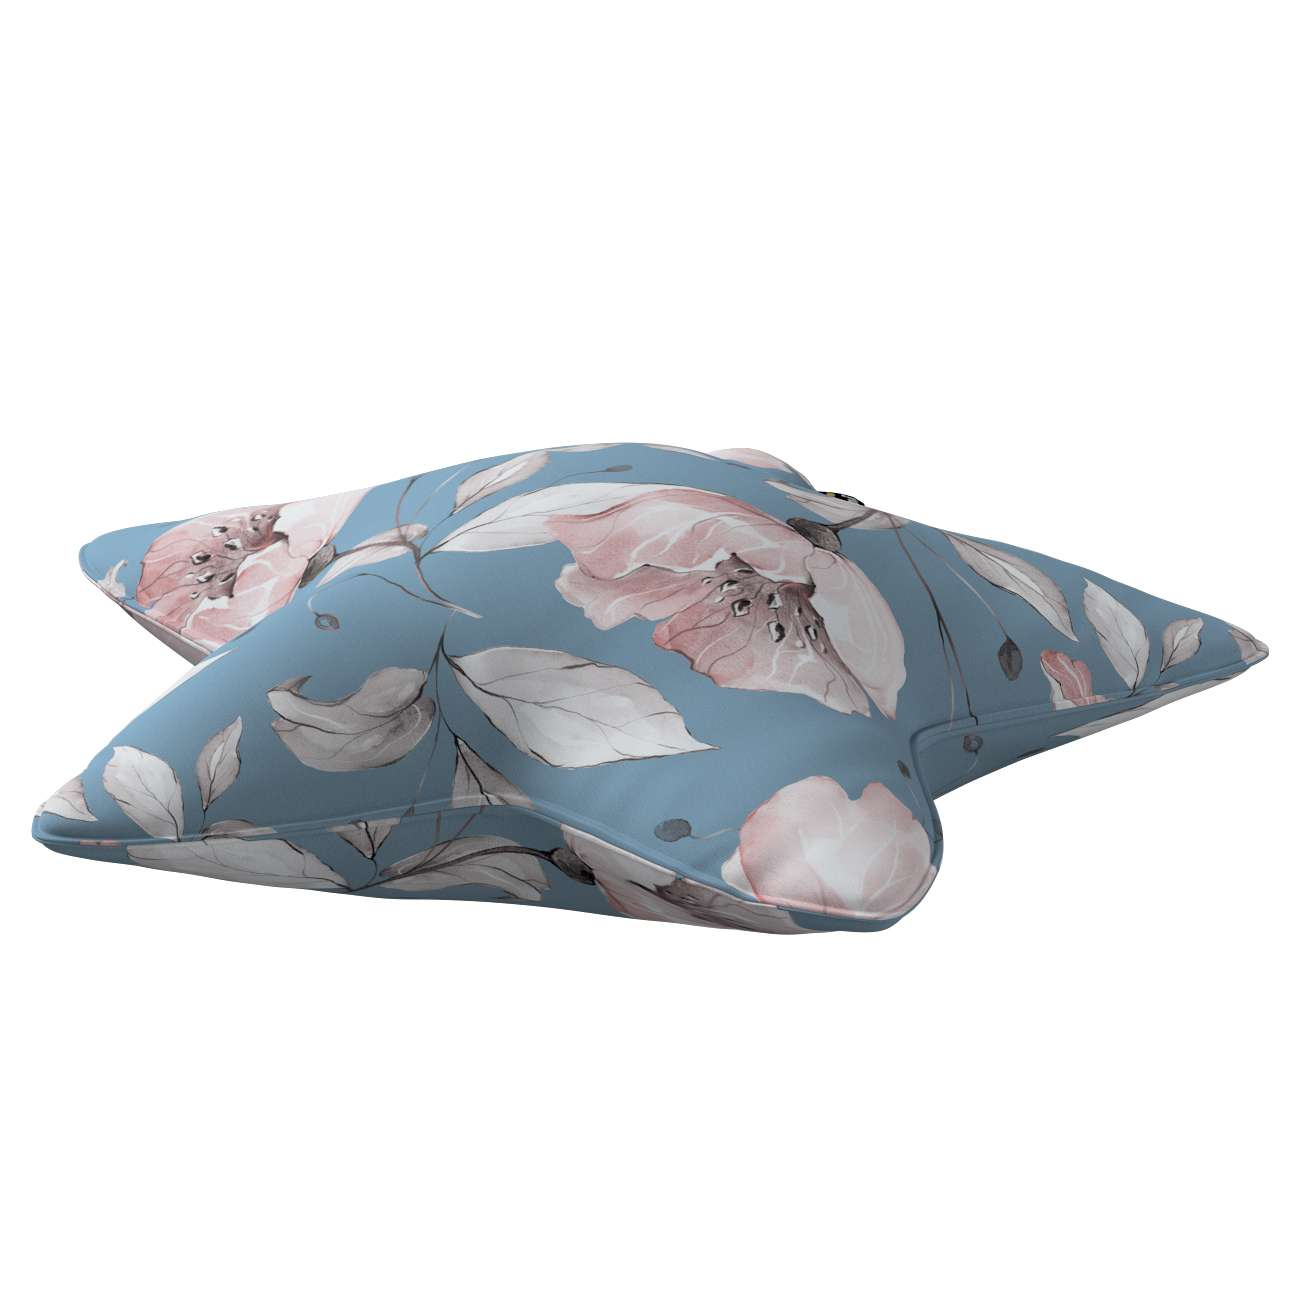 Lucky Star pillow in collection Magic Collection, fabric: 500-18